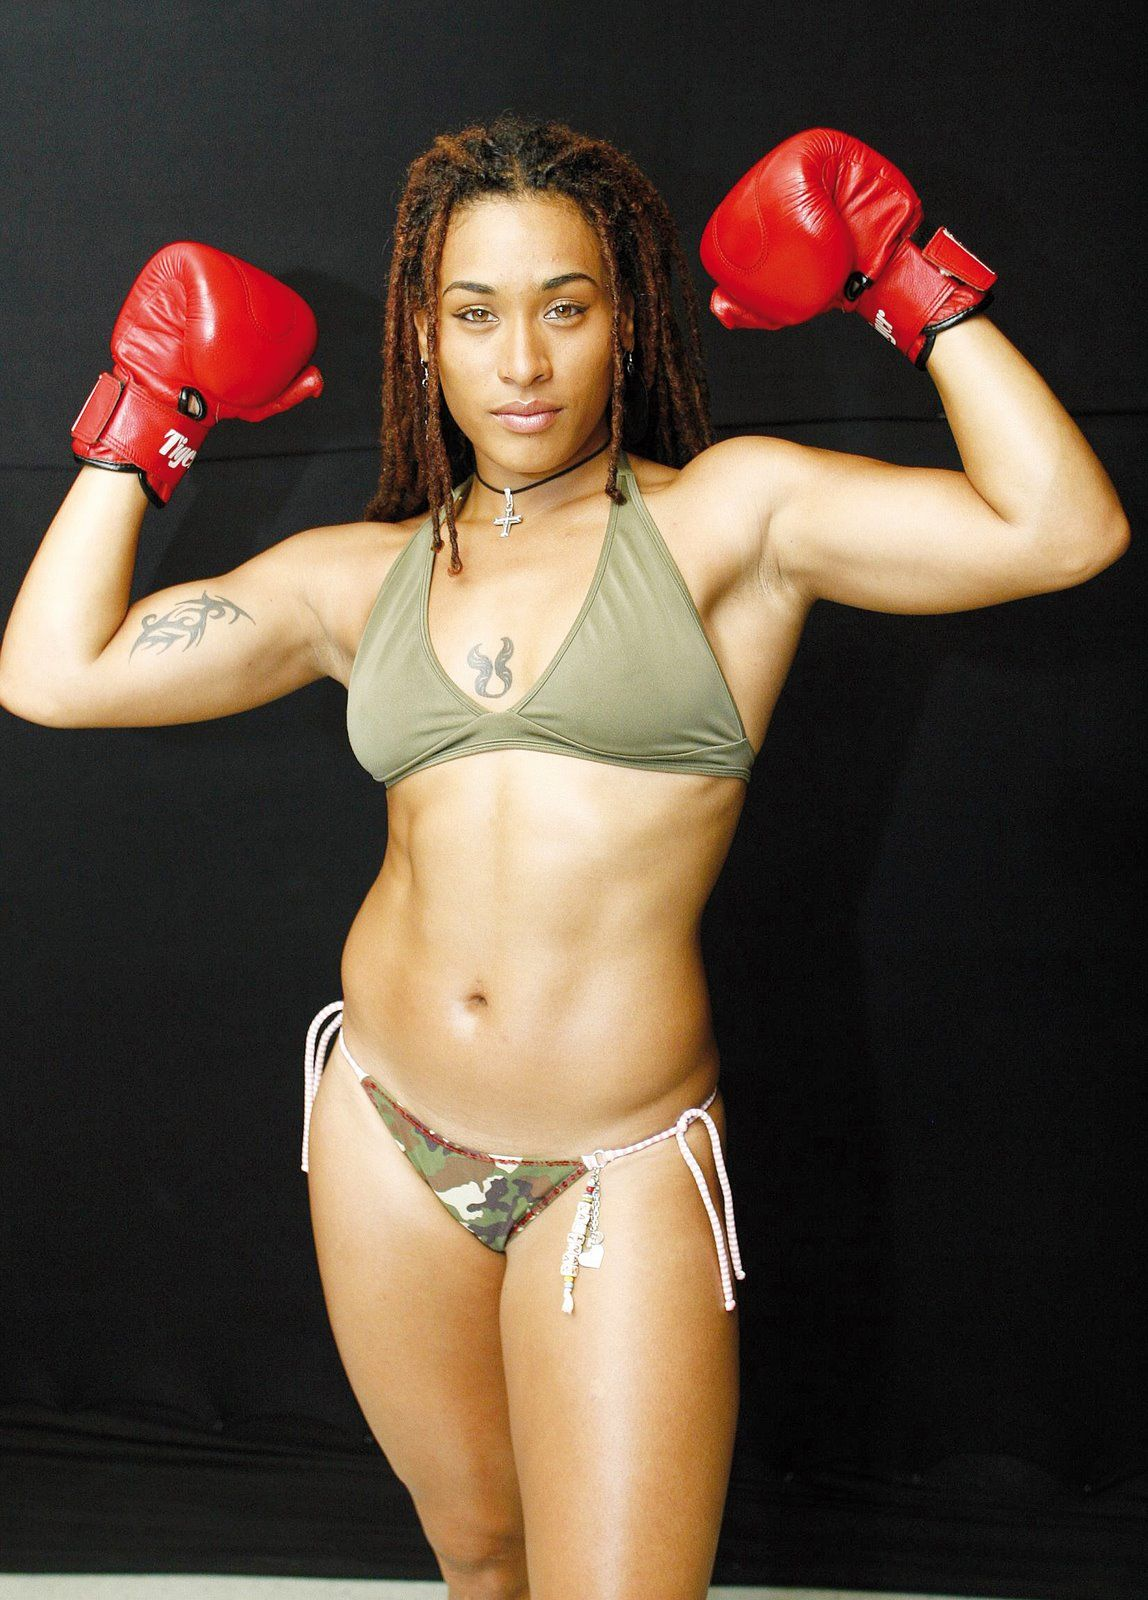 Watch See also: List of female boxers and List of female mixed martial artists video